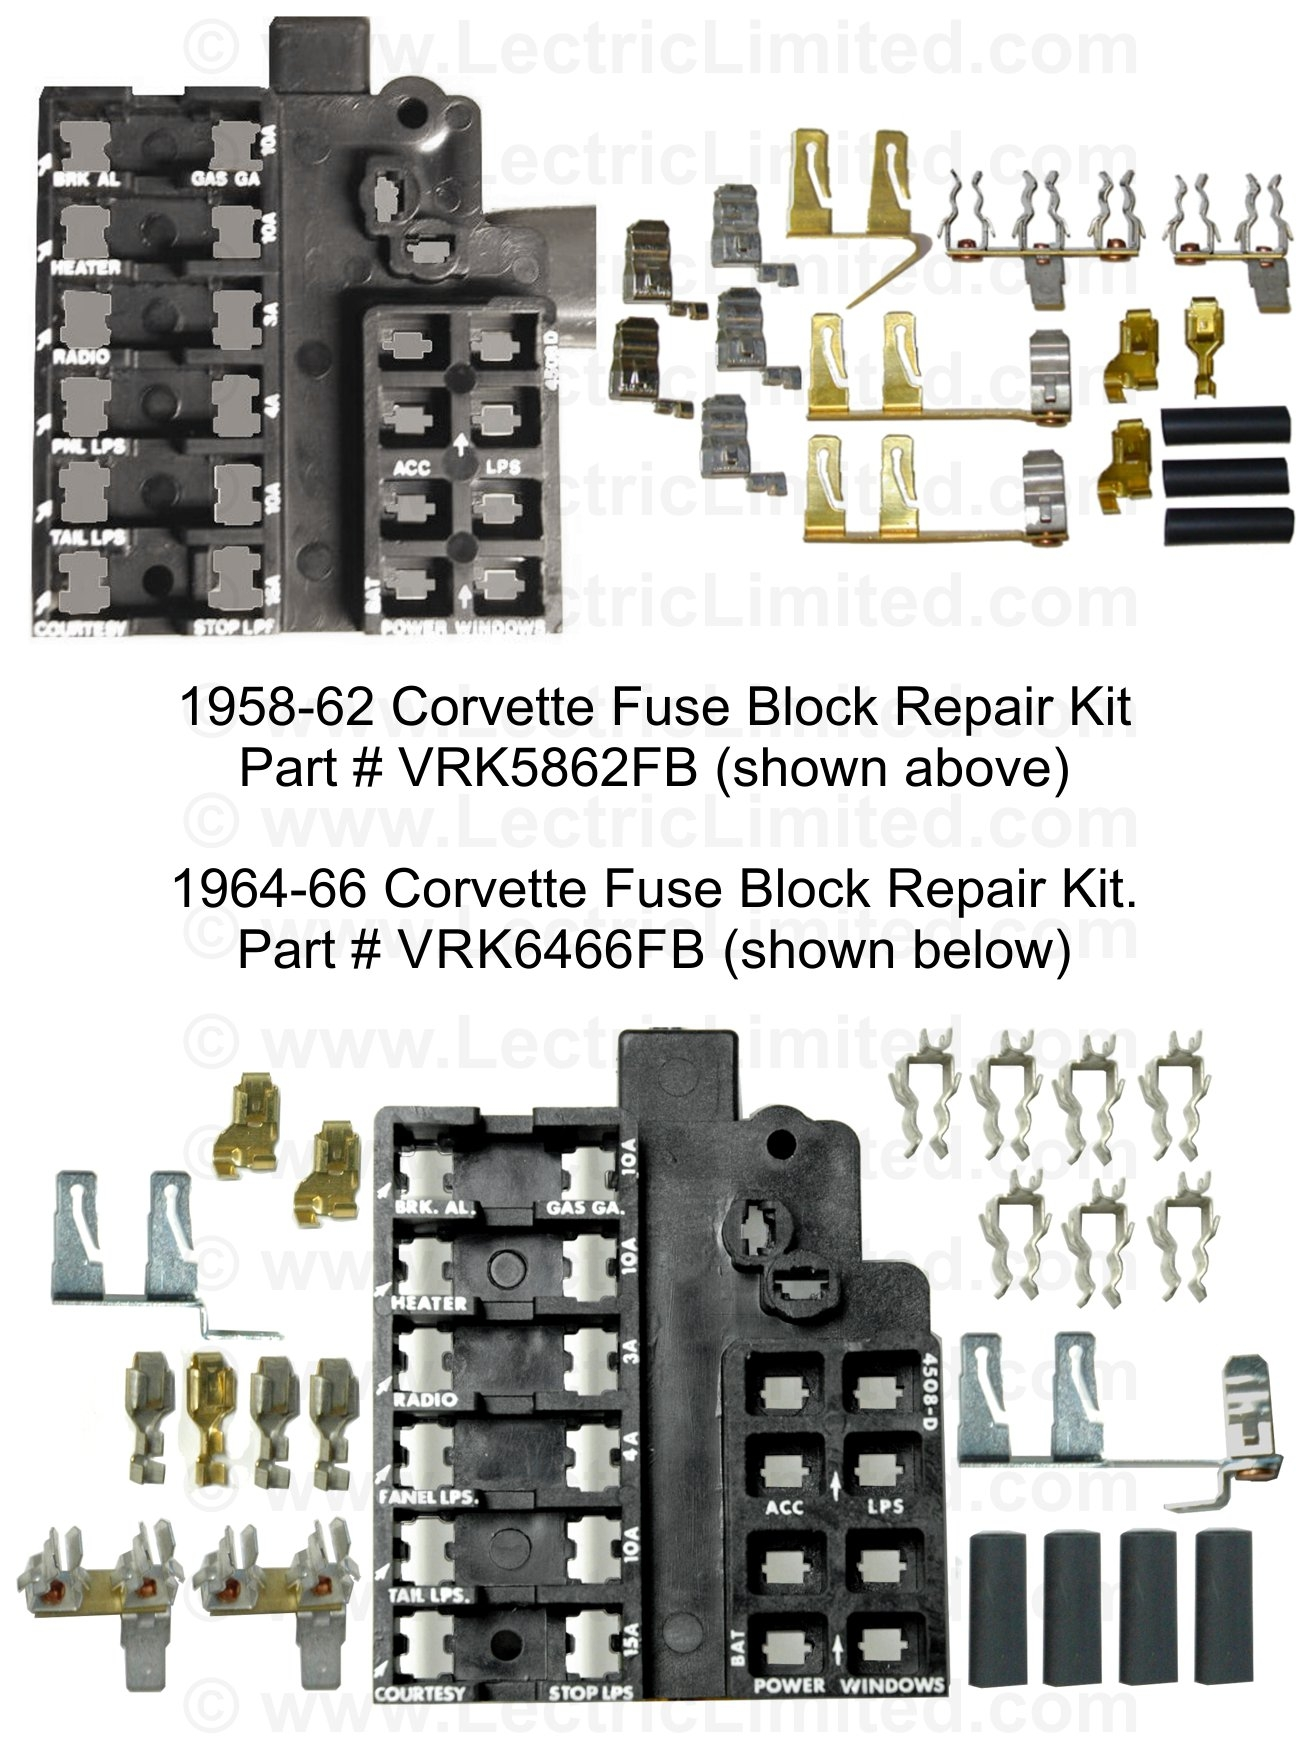 fuse block repair kit